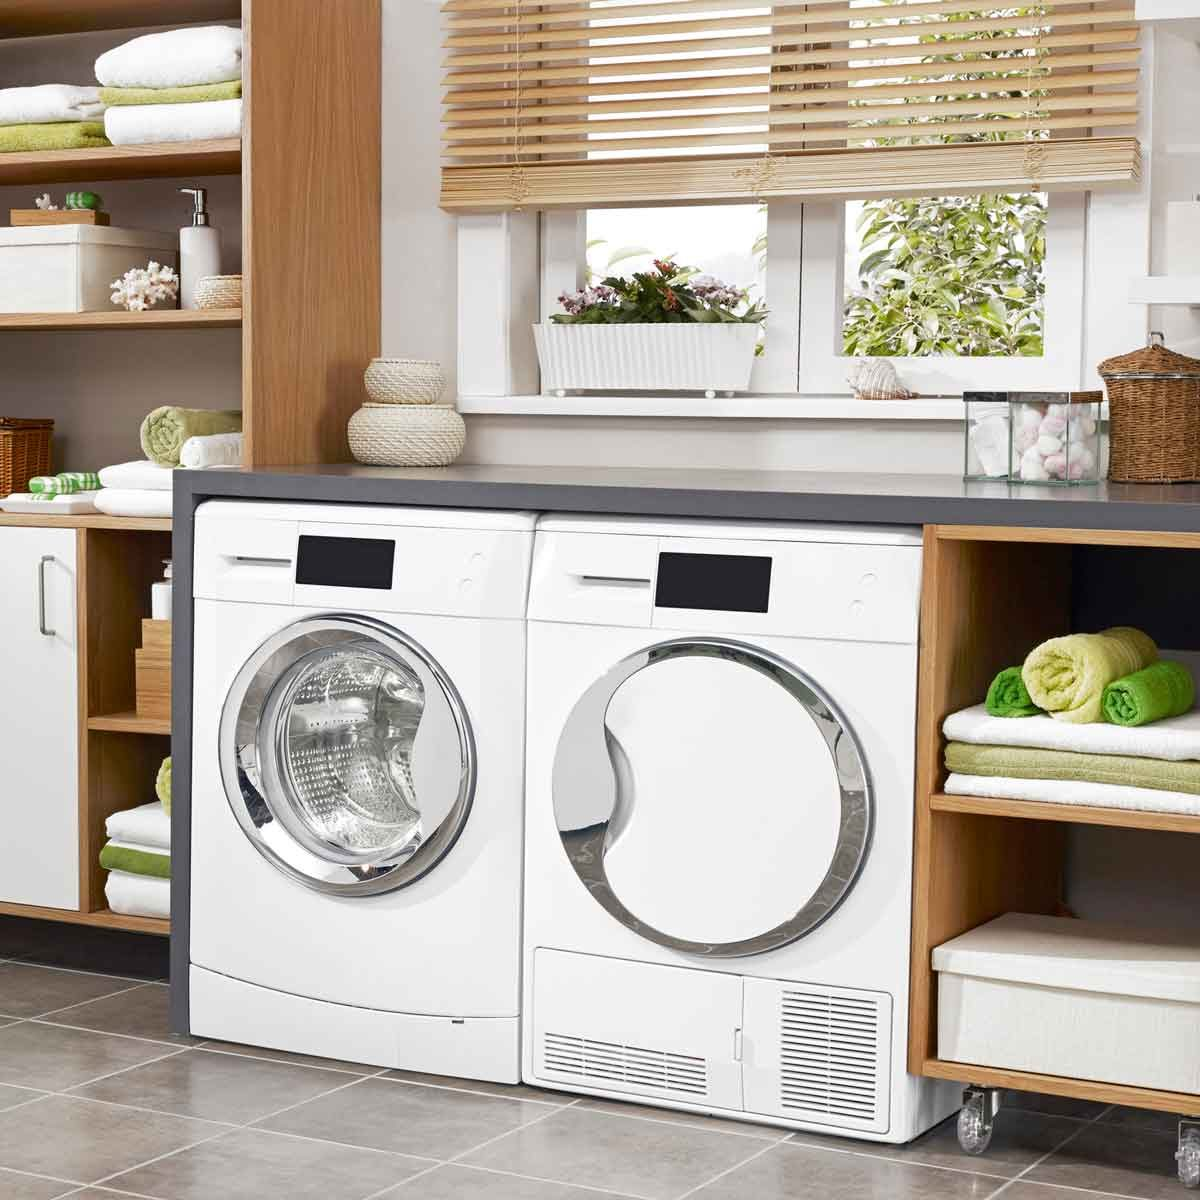 Washer Dryer Set Gettyimages 869825978